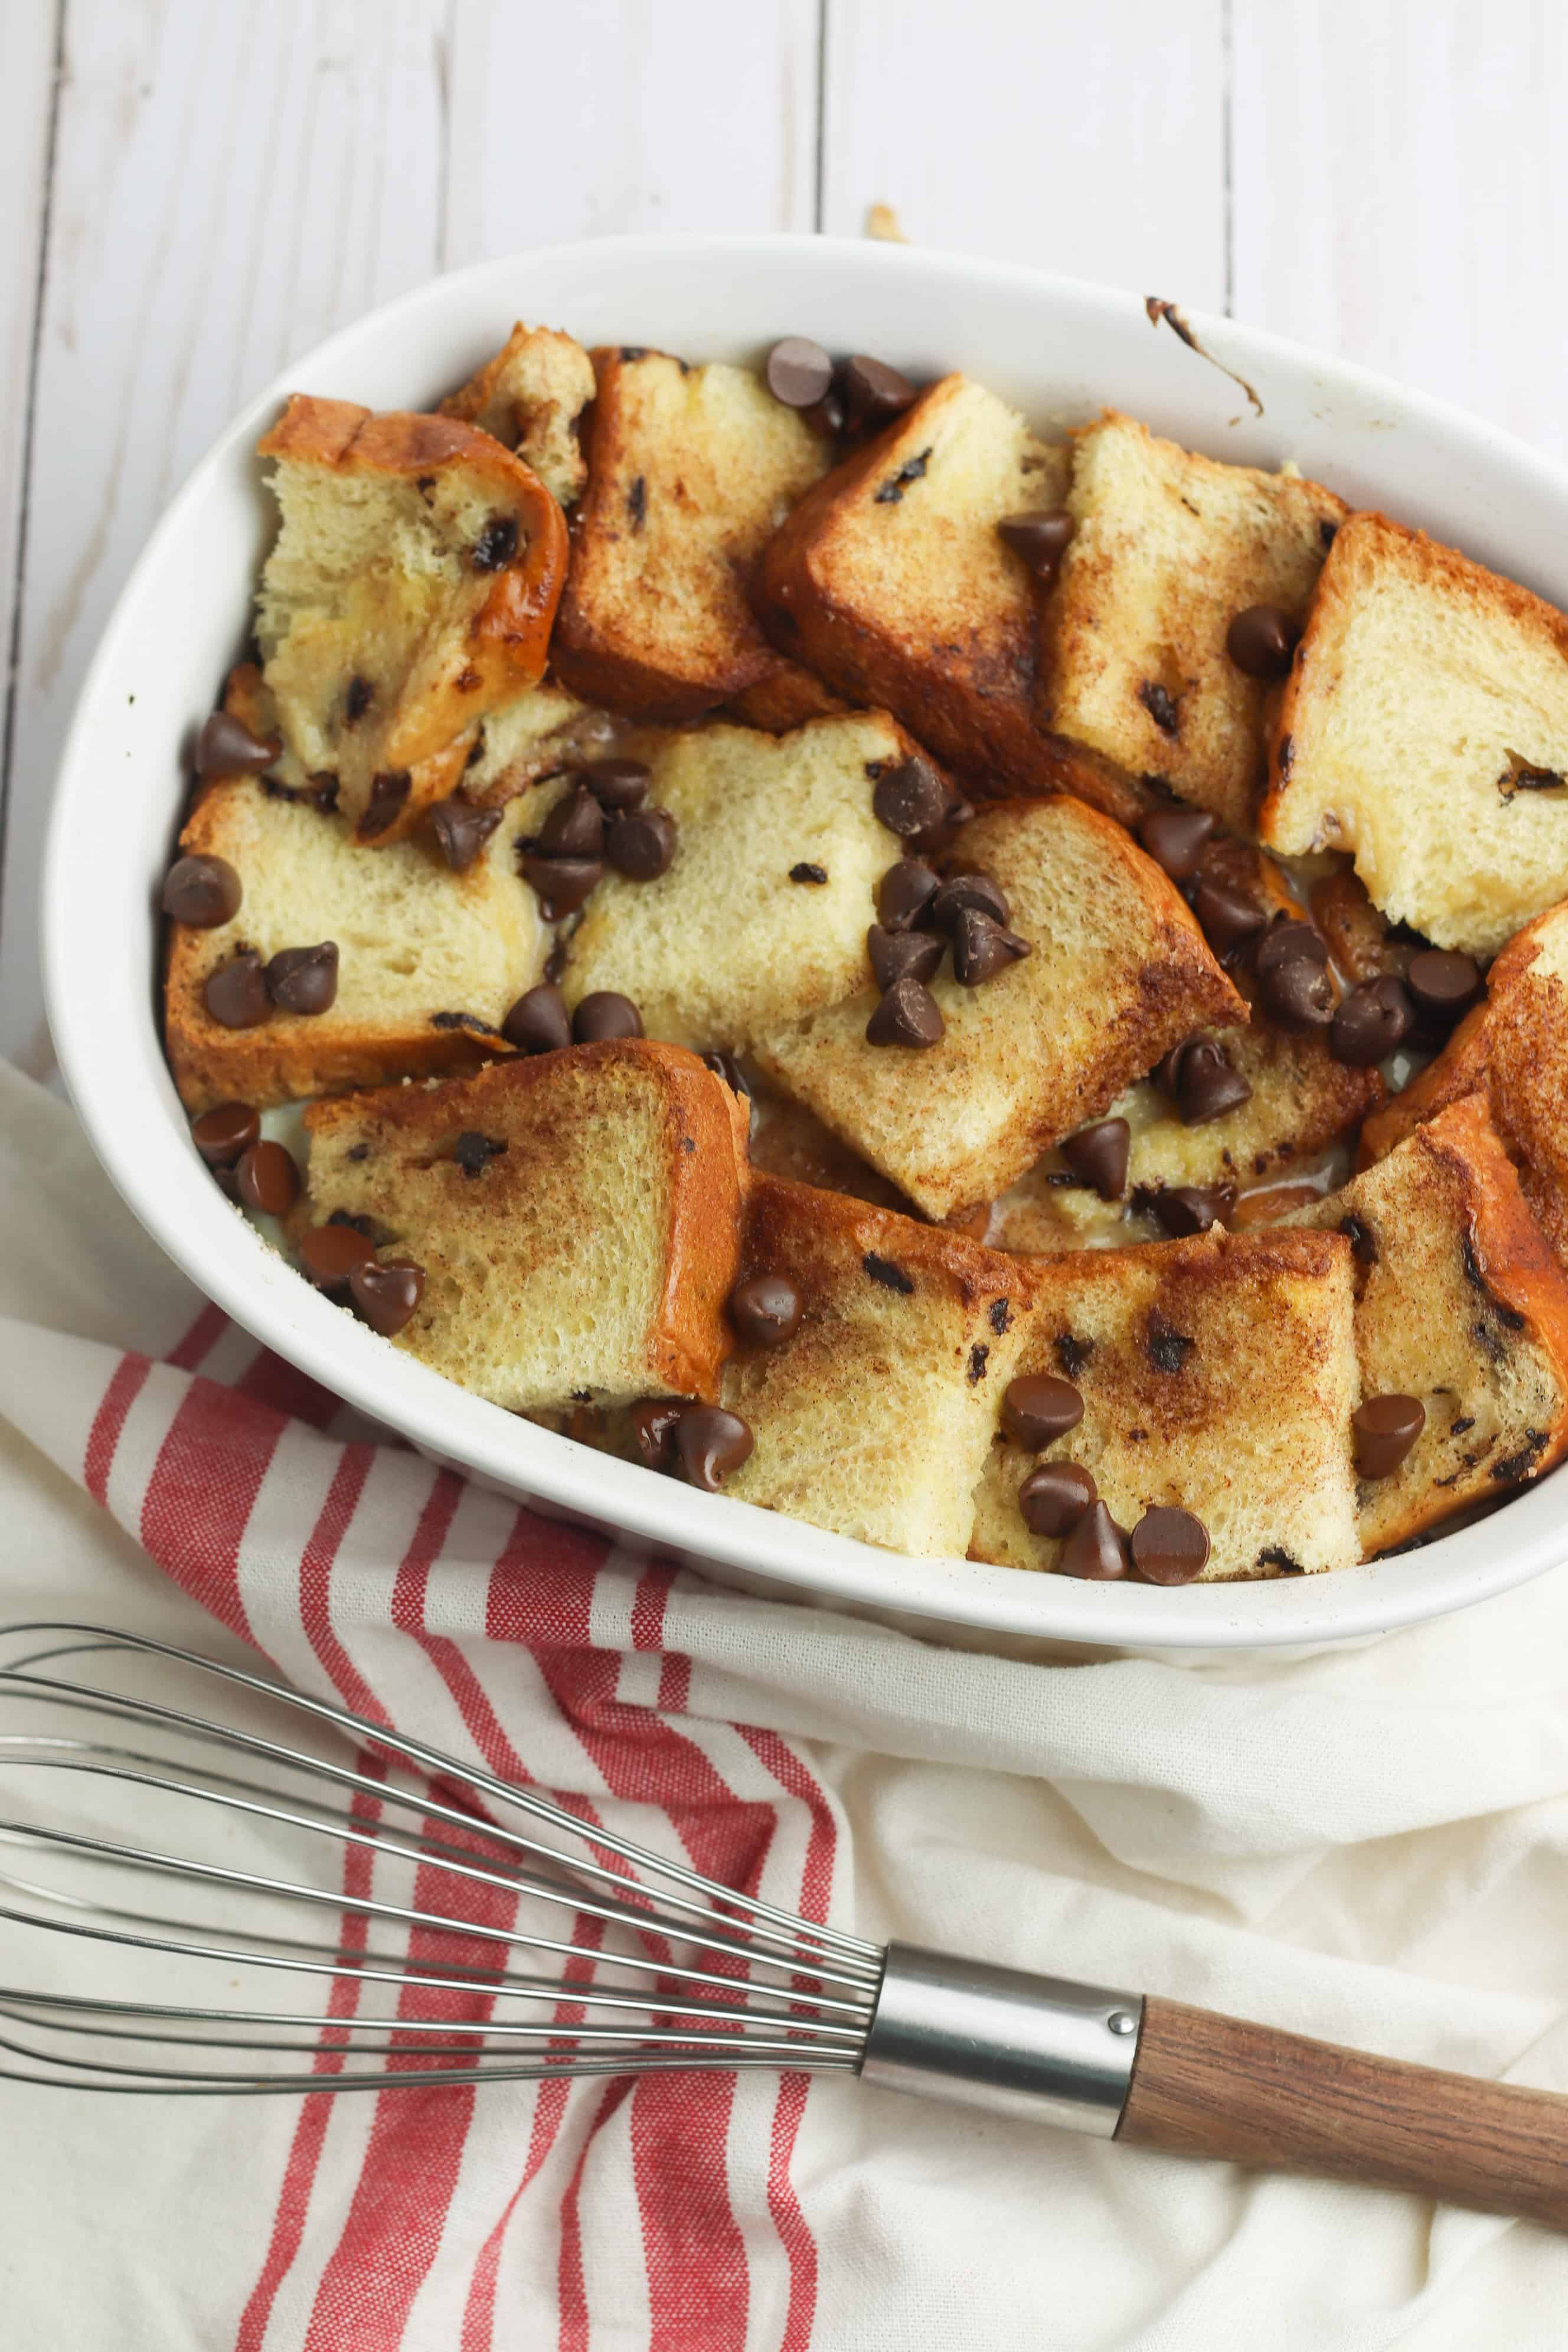 Easy Chocolate Chip French Toast Bake 4